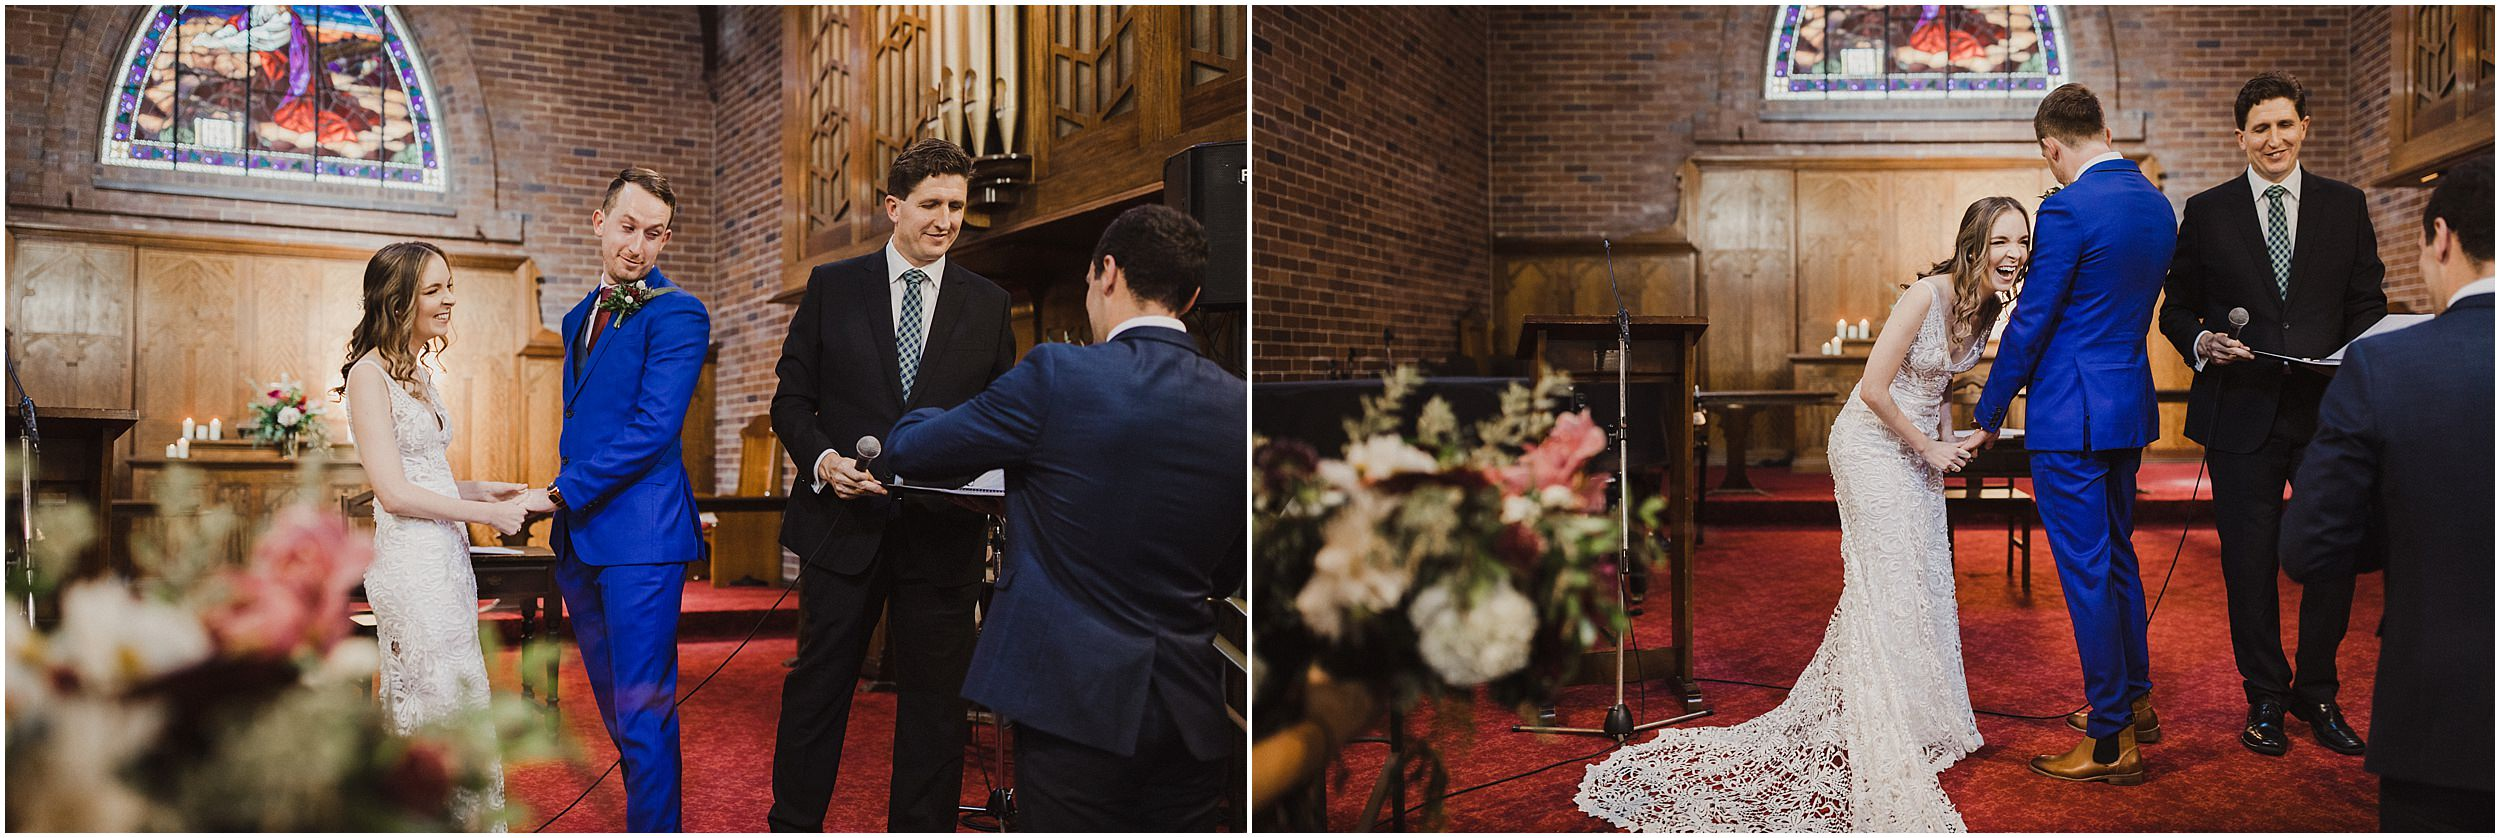 Sydney Wedding Ceremony - Northbridge Anglican